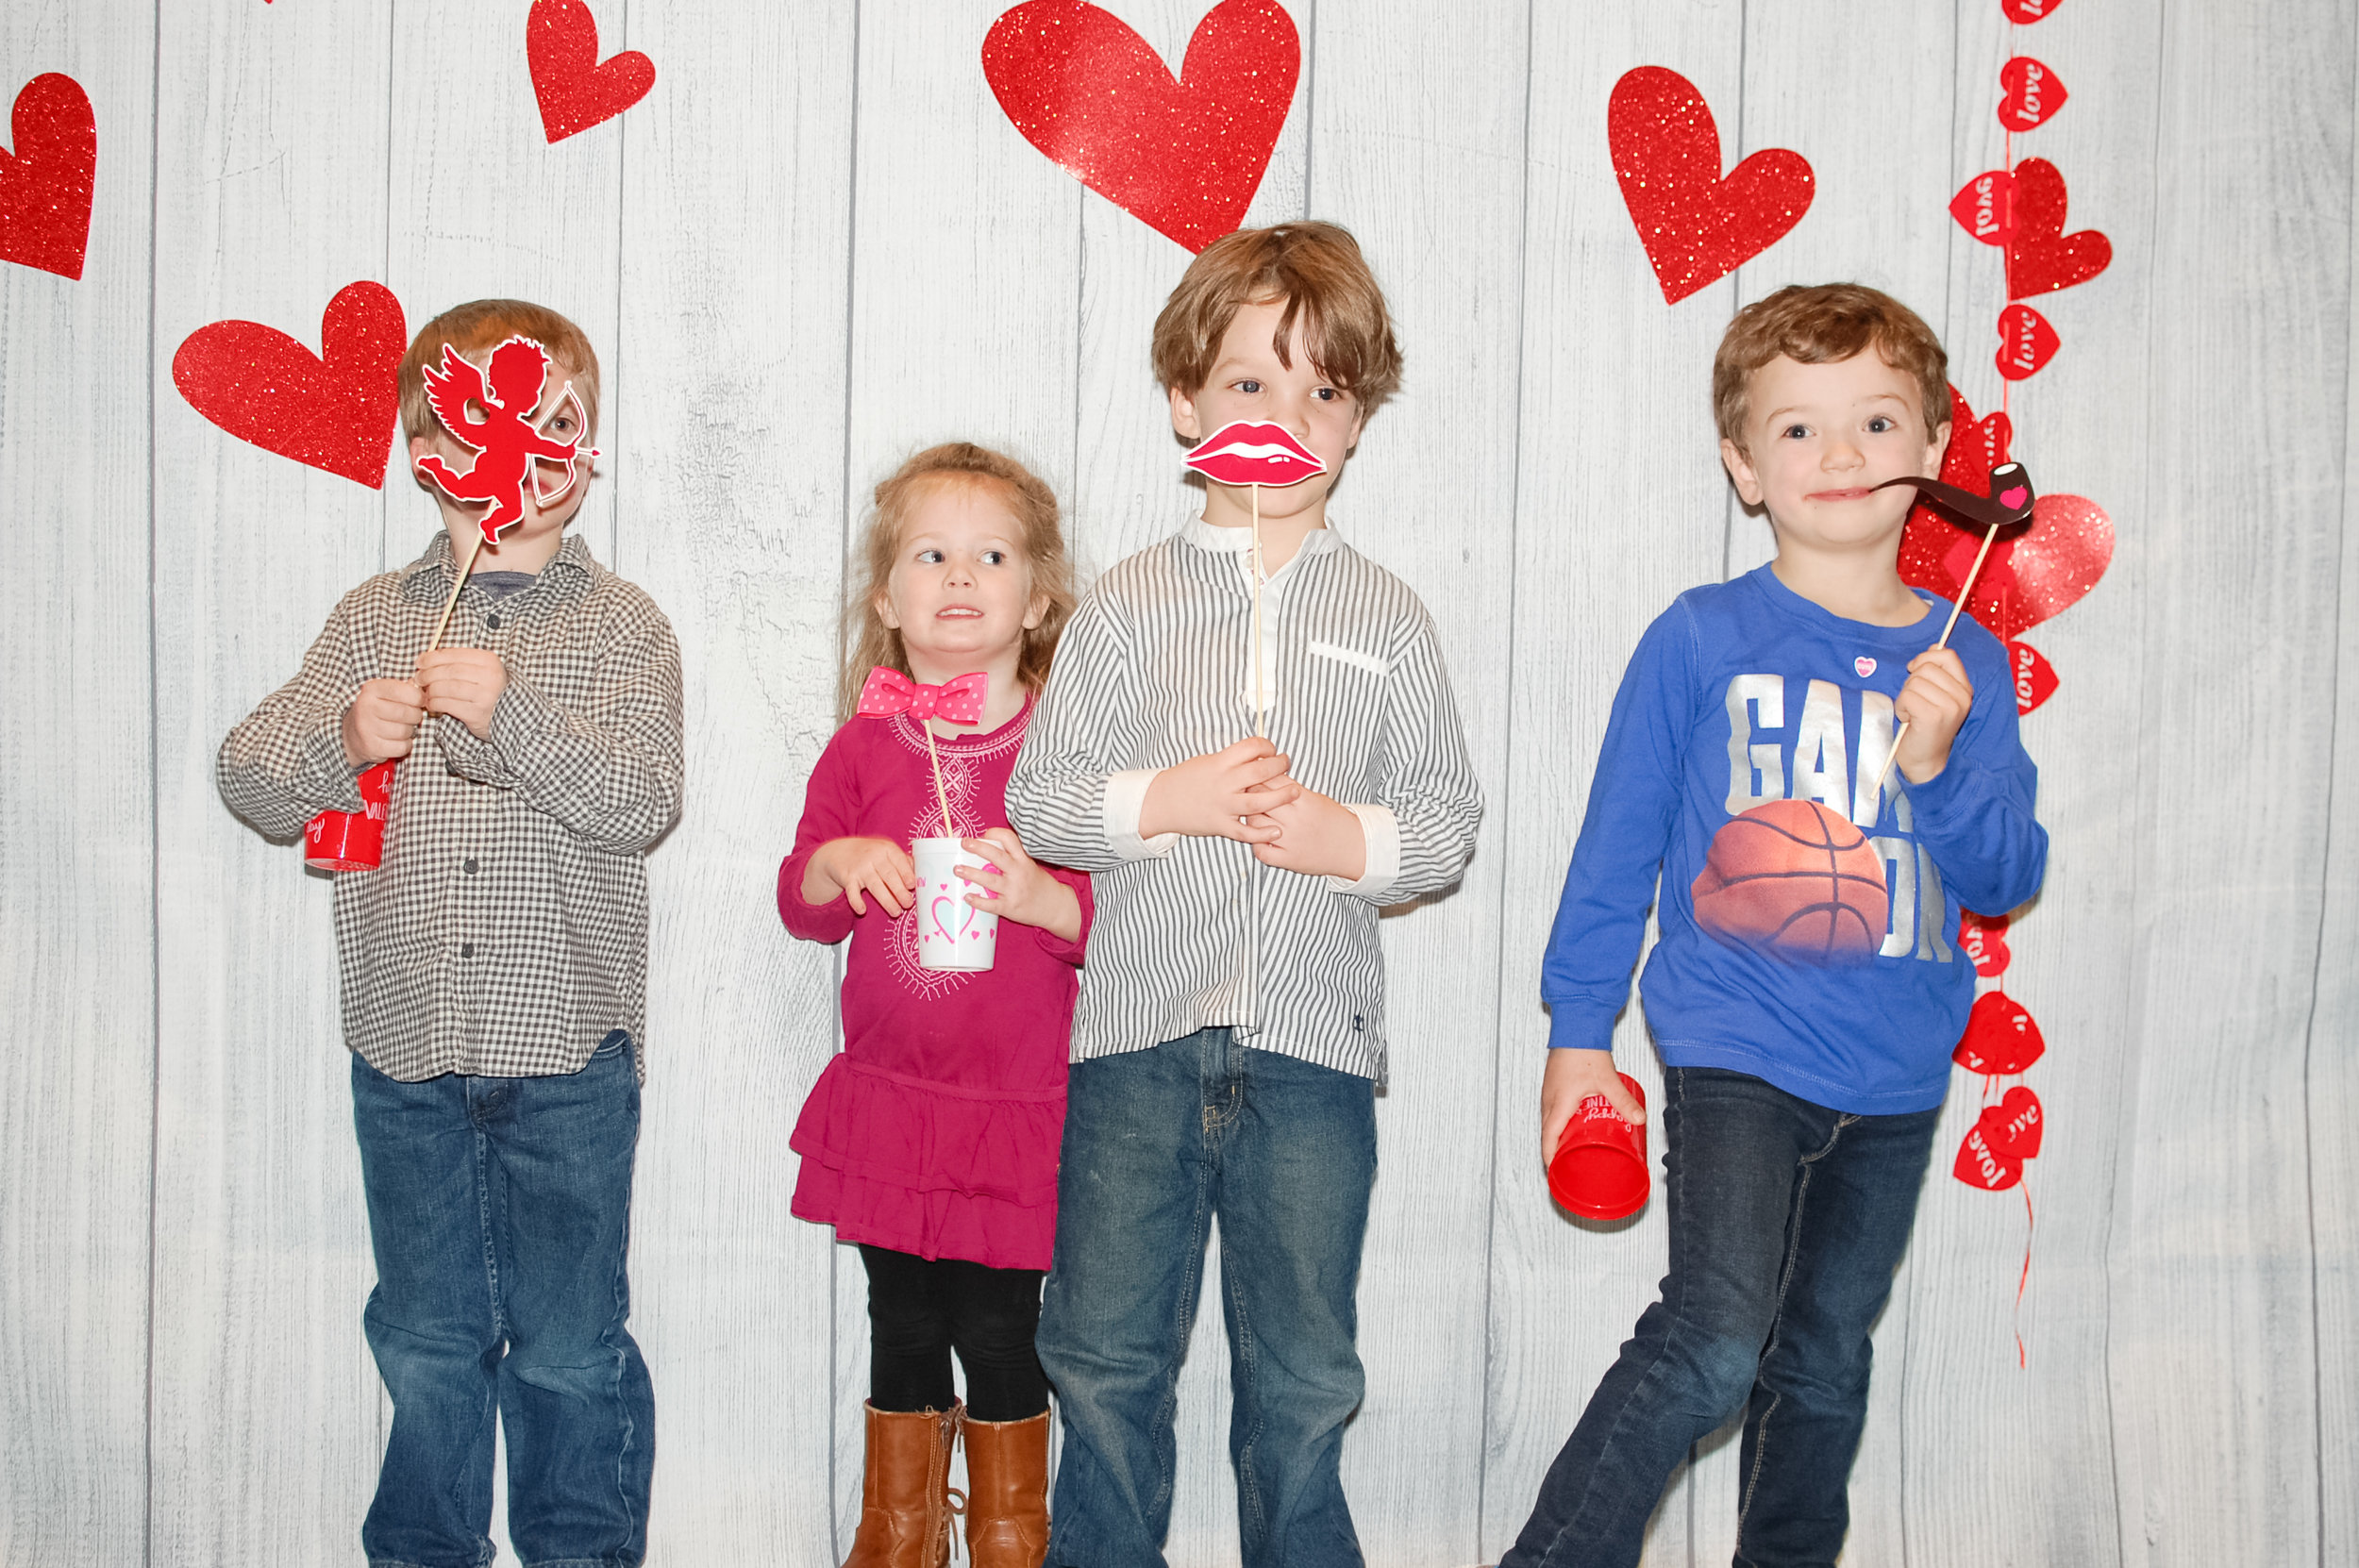 Valentine's Day Dinner - One of our newer school events is our Valentine's Day pasta dinner.  In February, our school community gathers for a potluck meal, music and fun.  This event gives our families the opportunity to socialize together while the children get extra time to play!